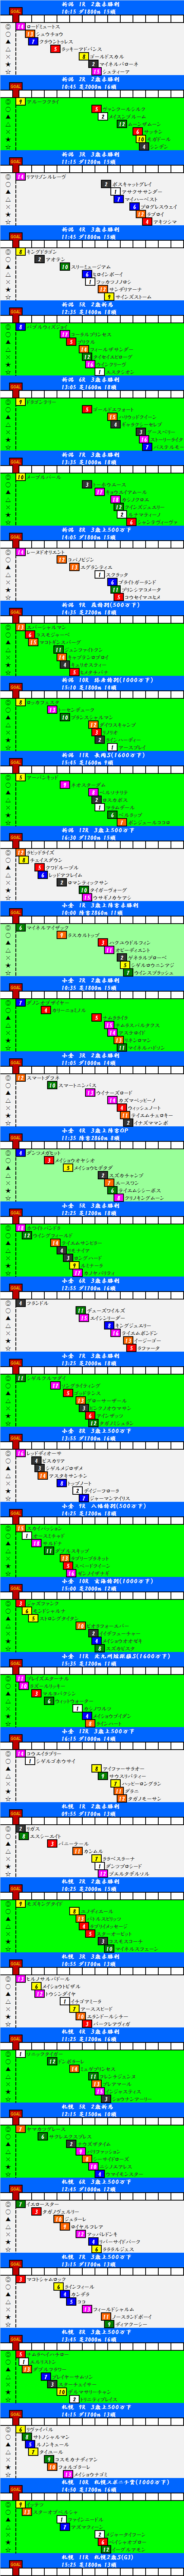 2016090301.png